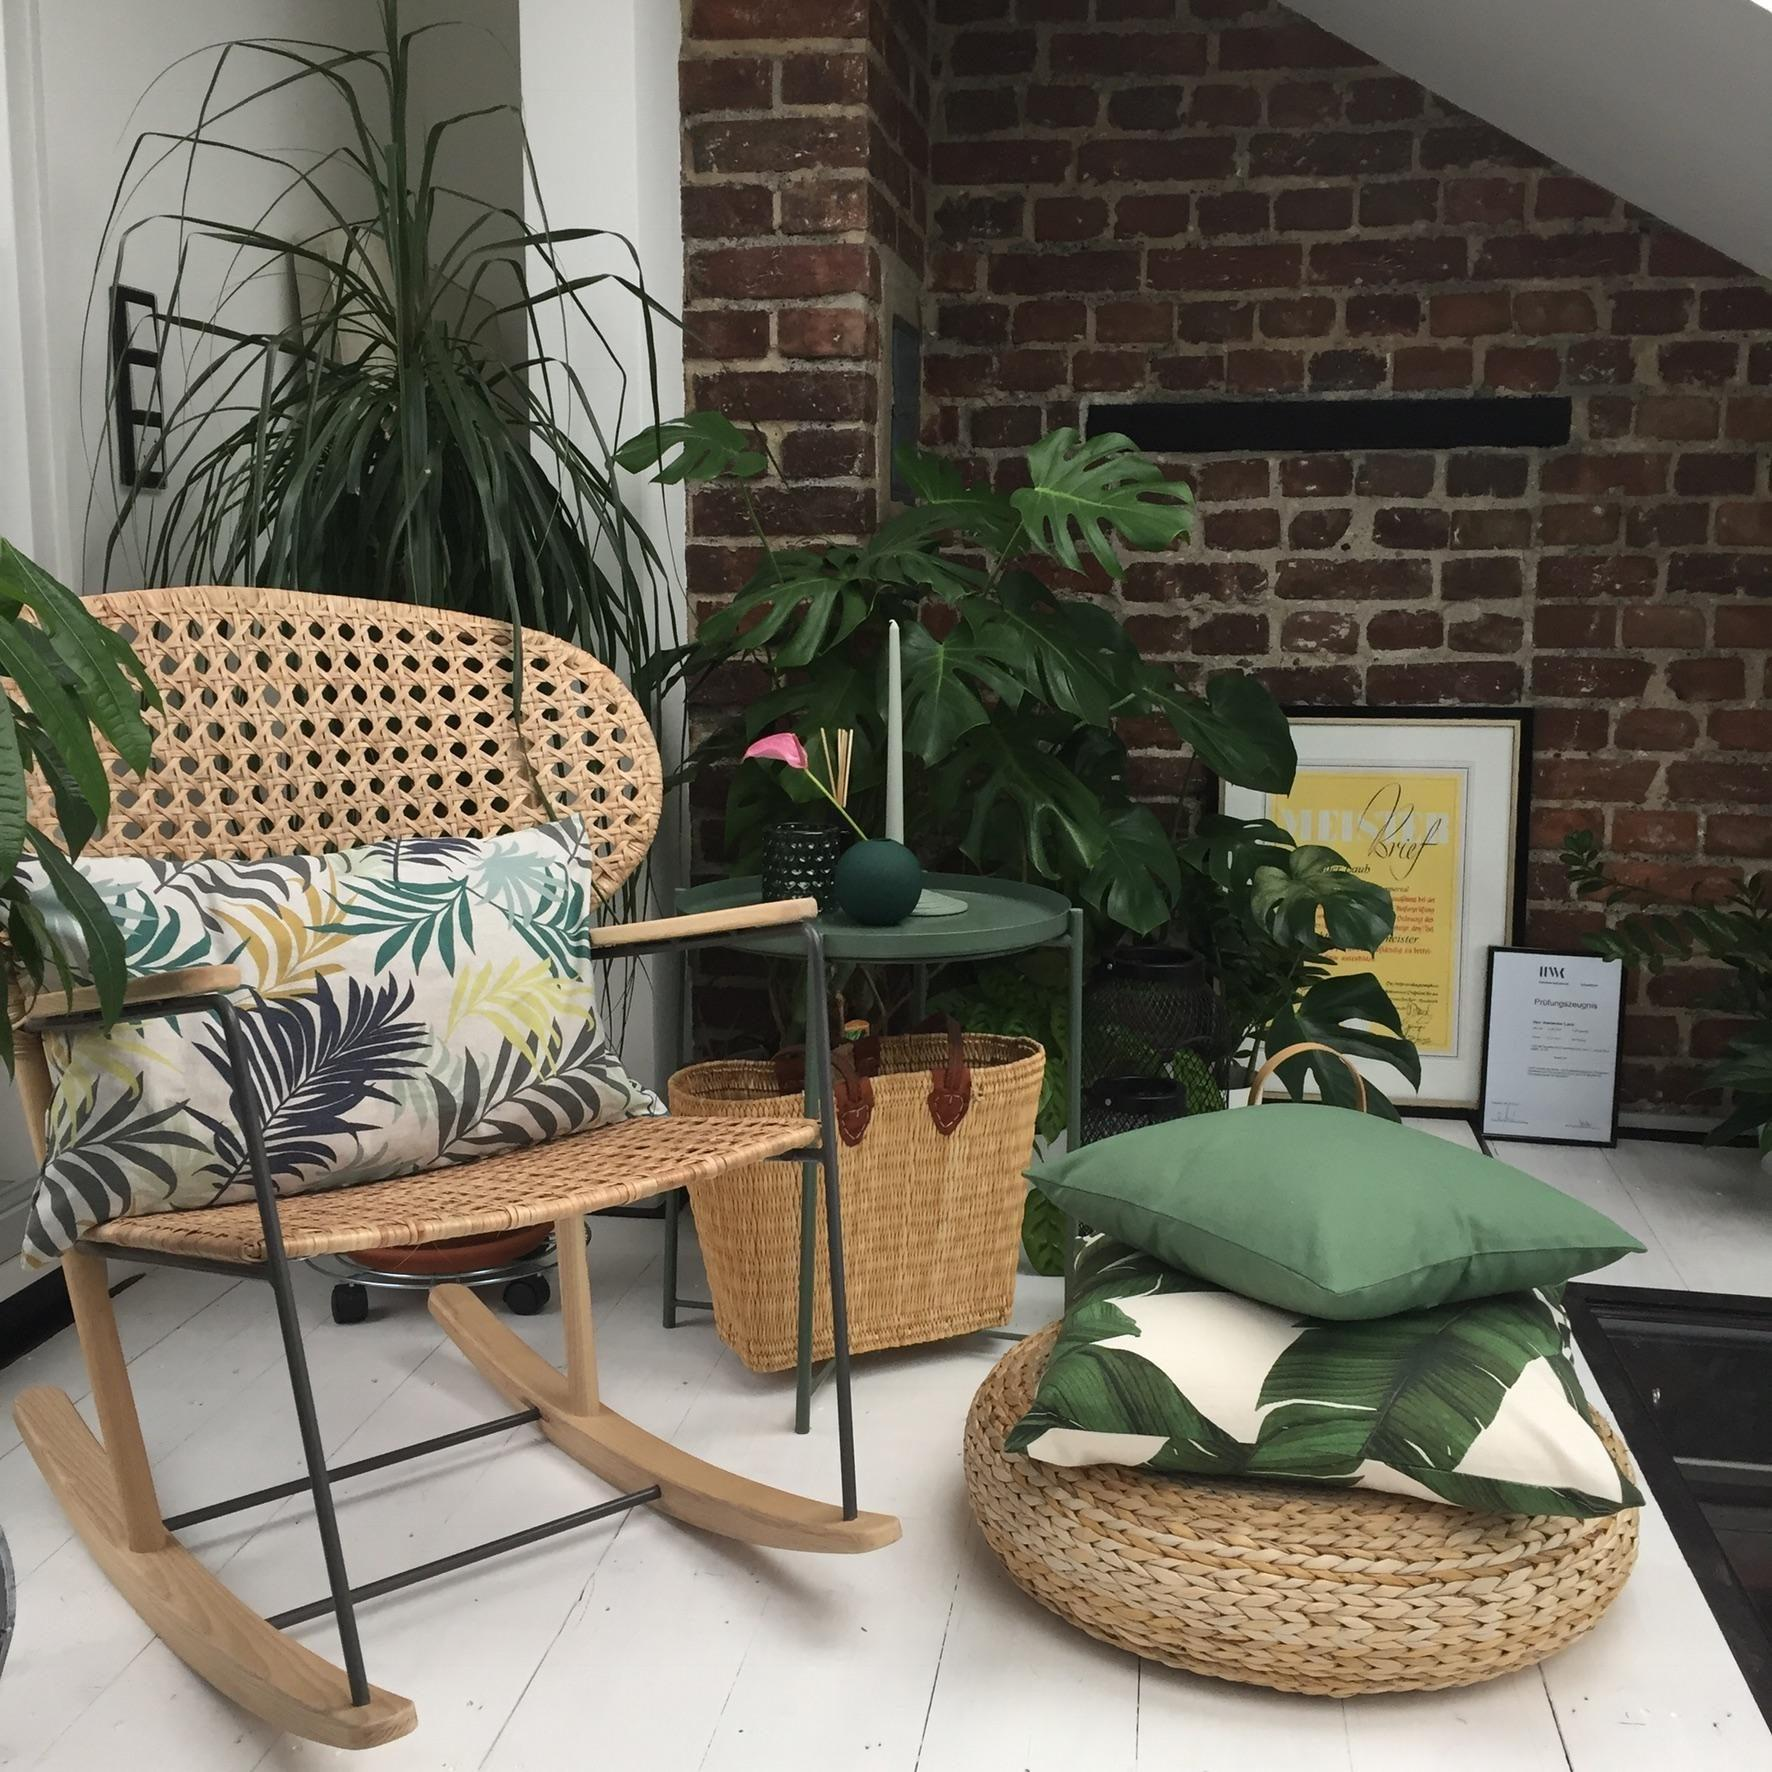 Mini Urban Jungle oder Kuschelecke